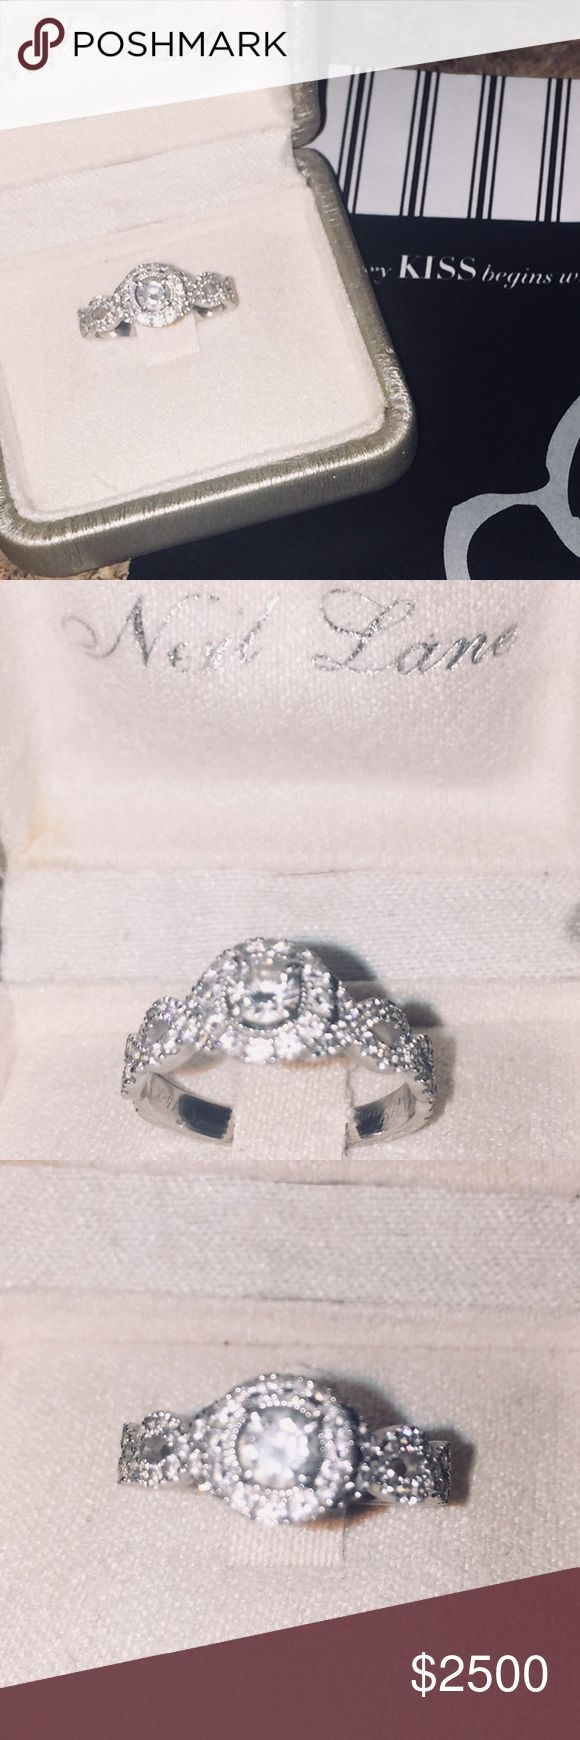 14K WHITE GOLD NEIL LANE DIAMOND ENGAGEMENT RING This 14 Karart white gold engagement ring is absolutely GORGEOUS!! Made by the best! This is a Neil Lane 1.3 Karat ring. Comes with papers and bought from kay jewelers. Its 1.3 karats! Just needs a little buffed and cleaned and it will look brand new. Retailed at 3800.00! Was bought 5-11-15. If u have any questions please feel free to ask me anything, thanks for stopping by! Kay Jewelers Jewelry Rings